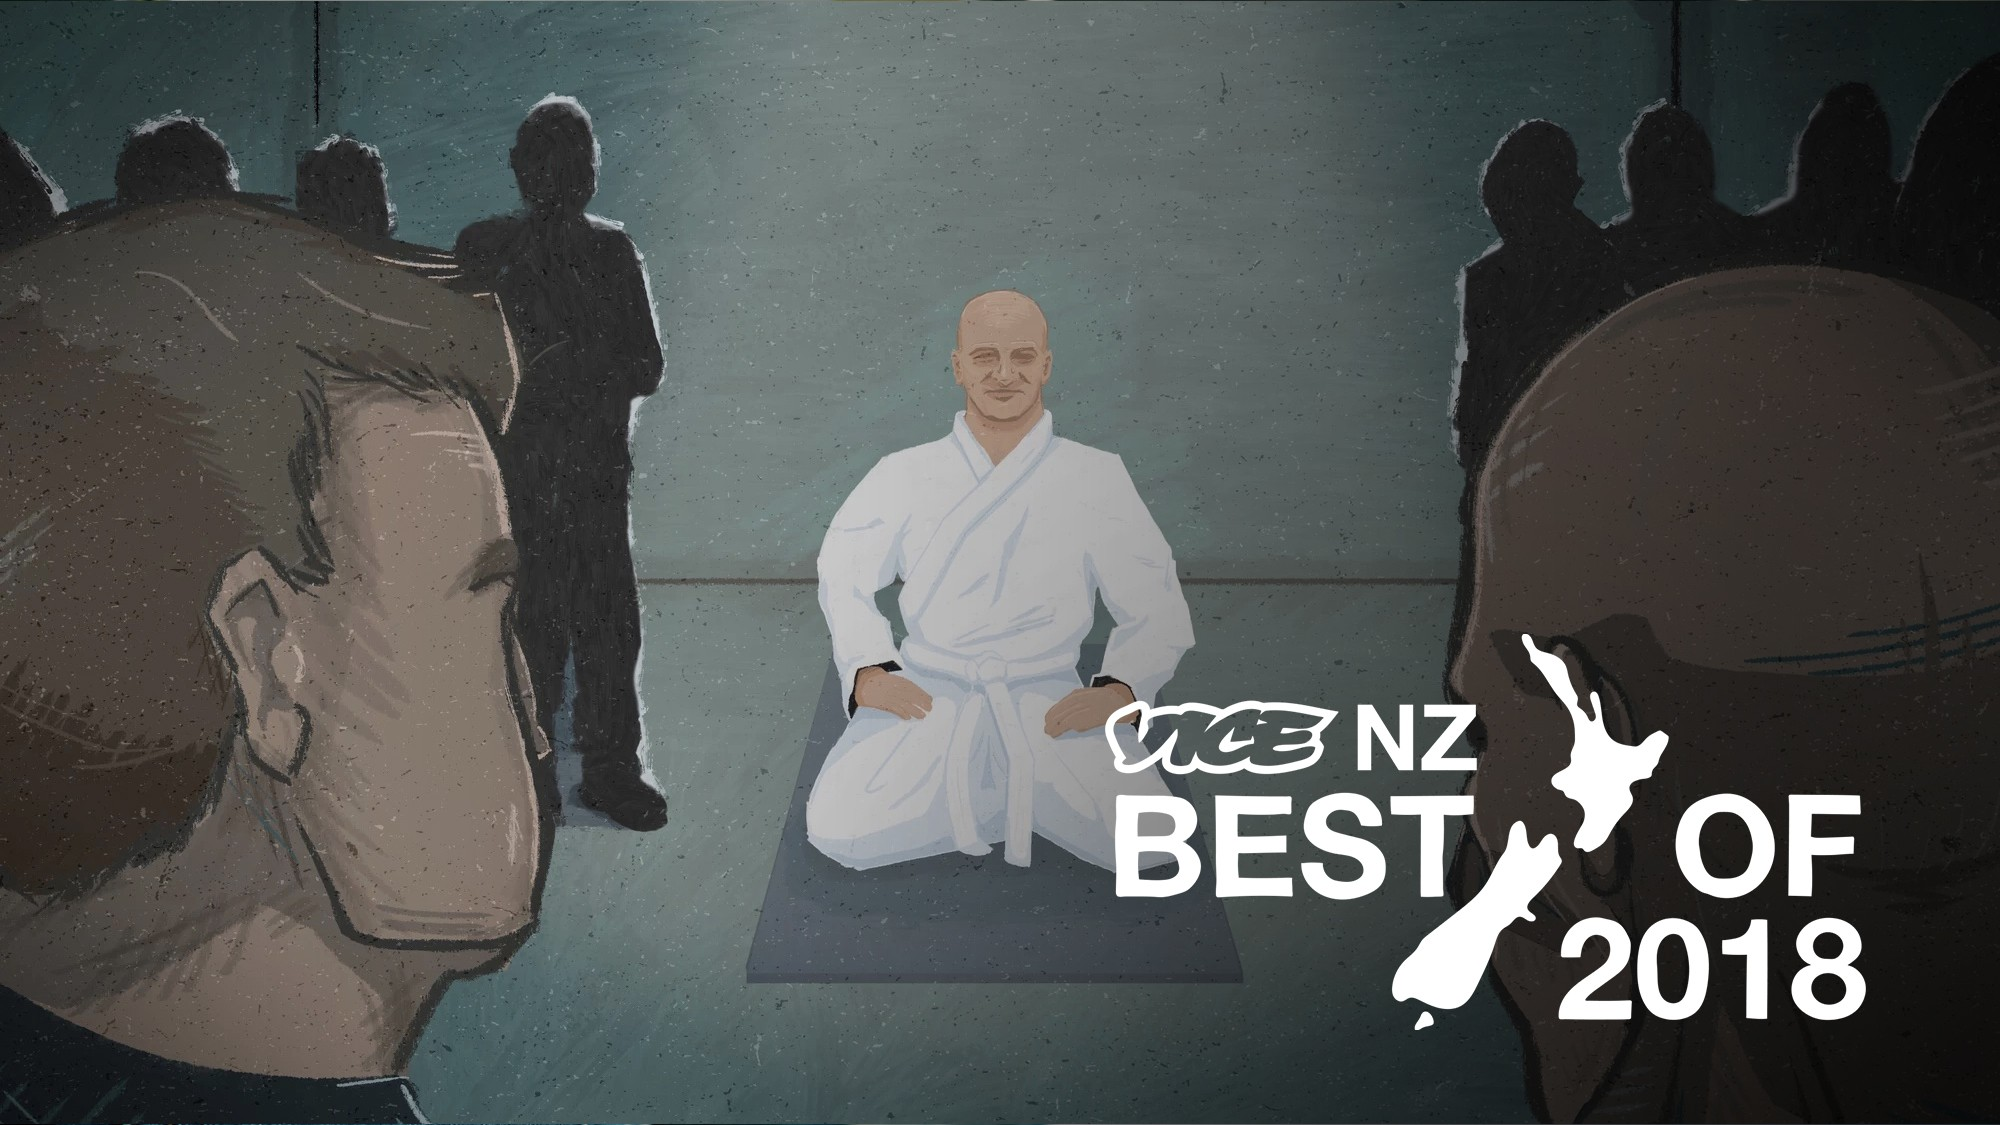 The Life and Influence of Real-Life Martial Arts Monk, Kiwi